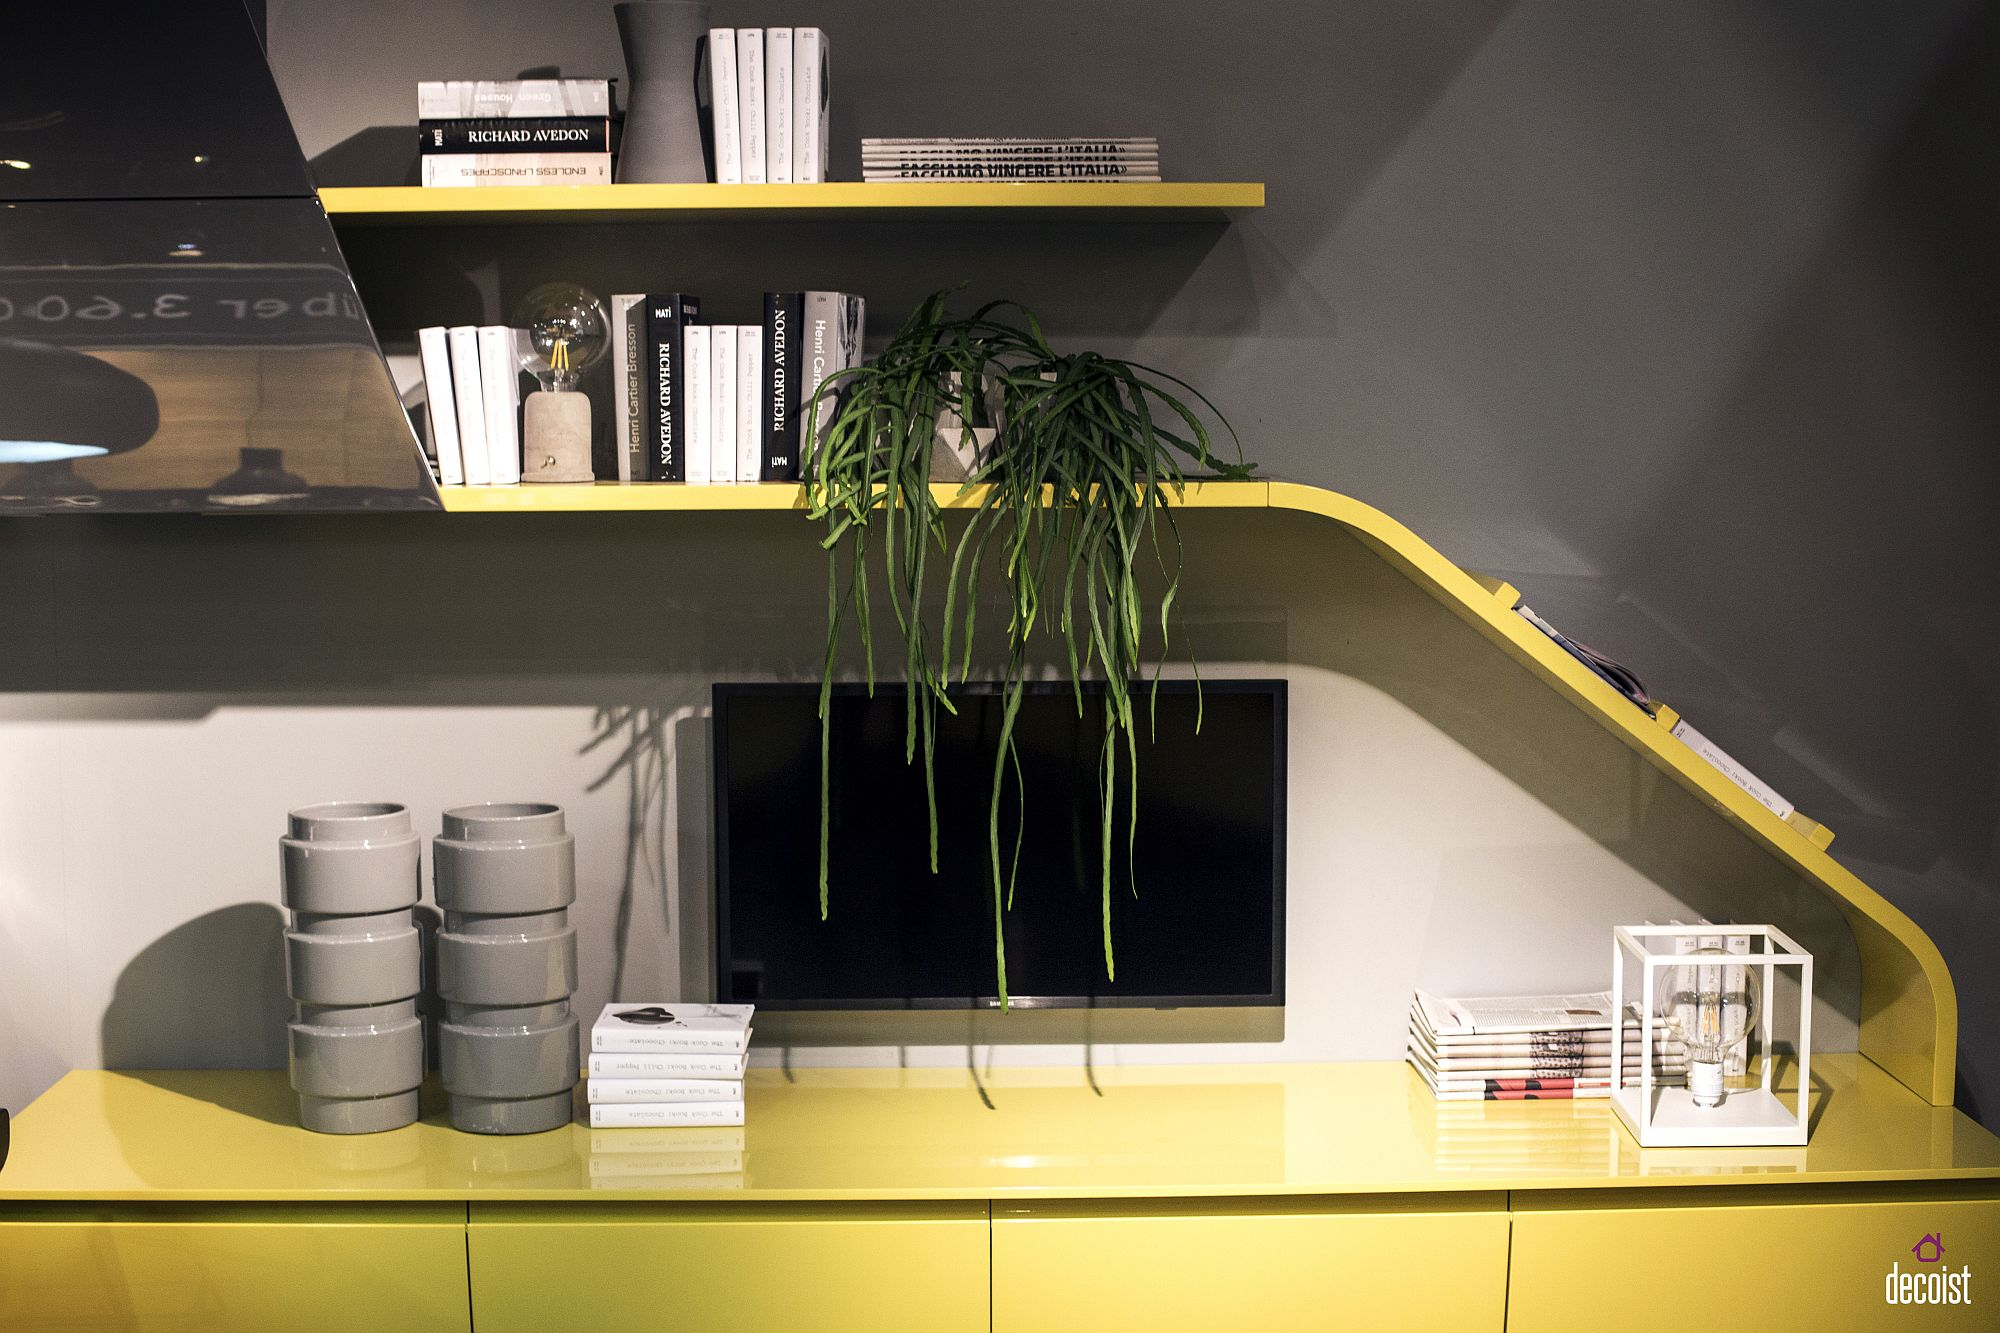 Innovative worktops andsmart shelving for the polished single-wall kitchen